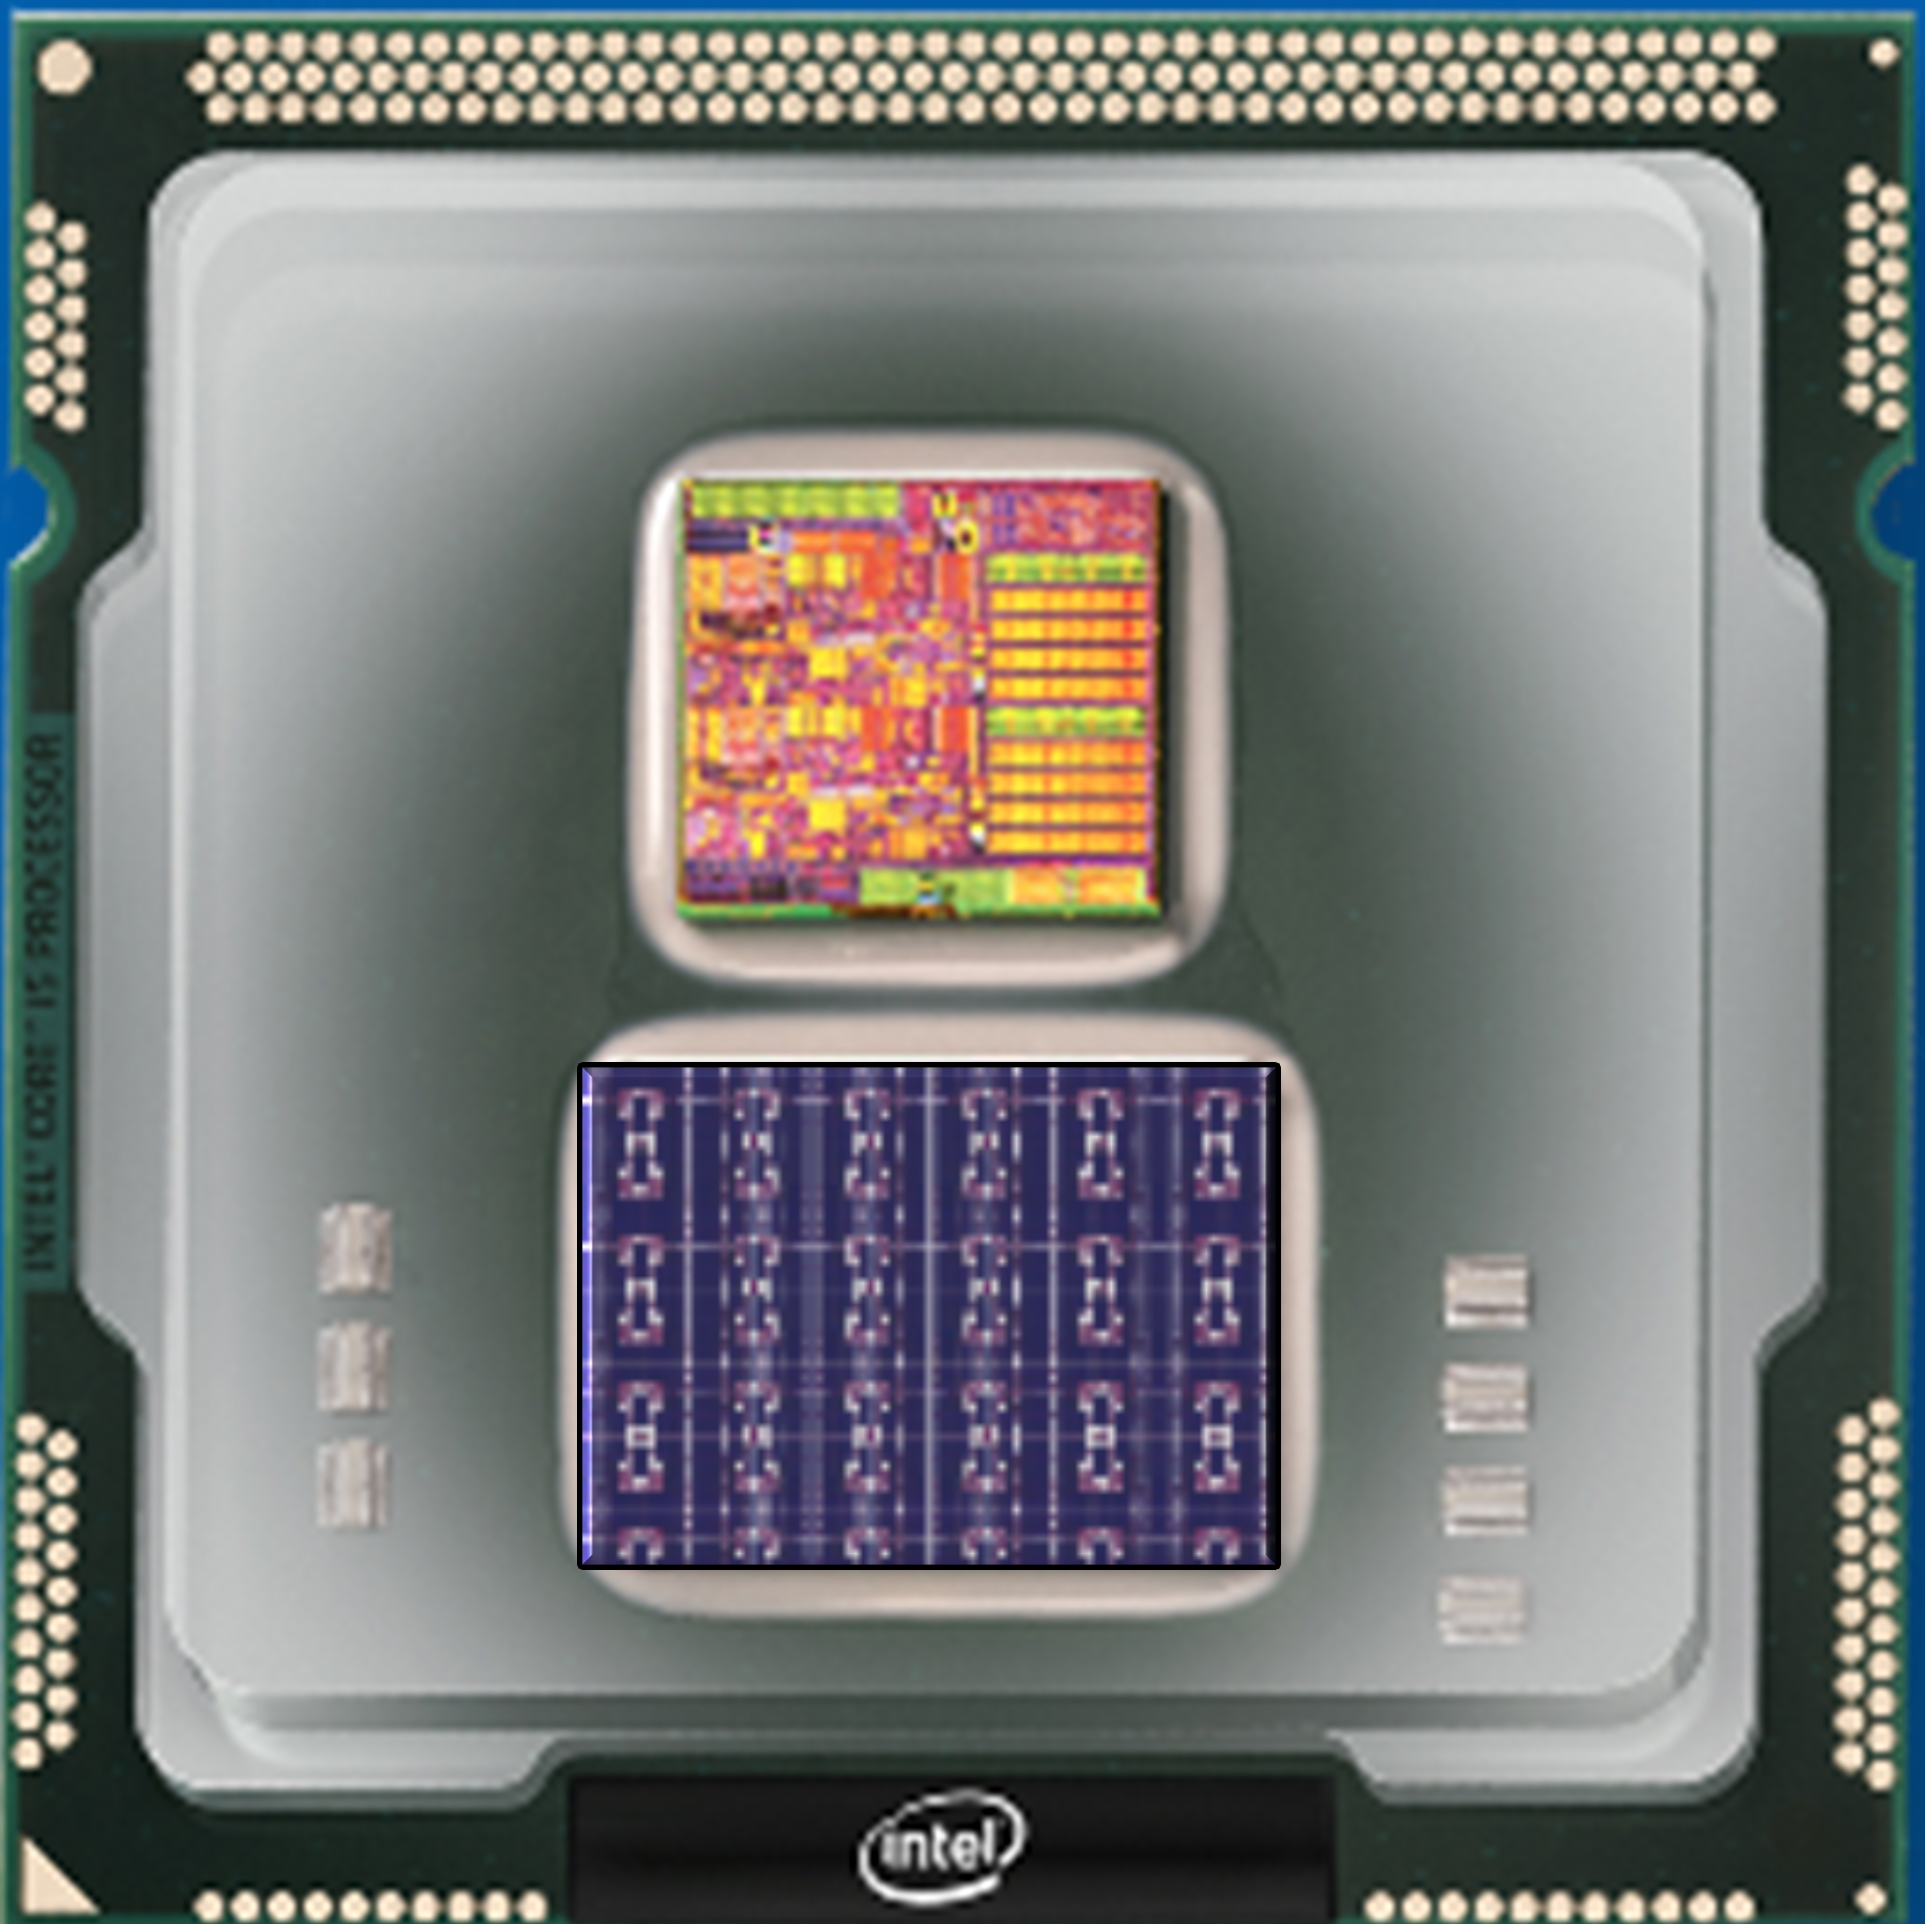 Intel Loihi mimics human brain function for self-learning